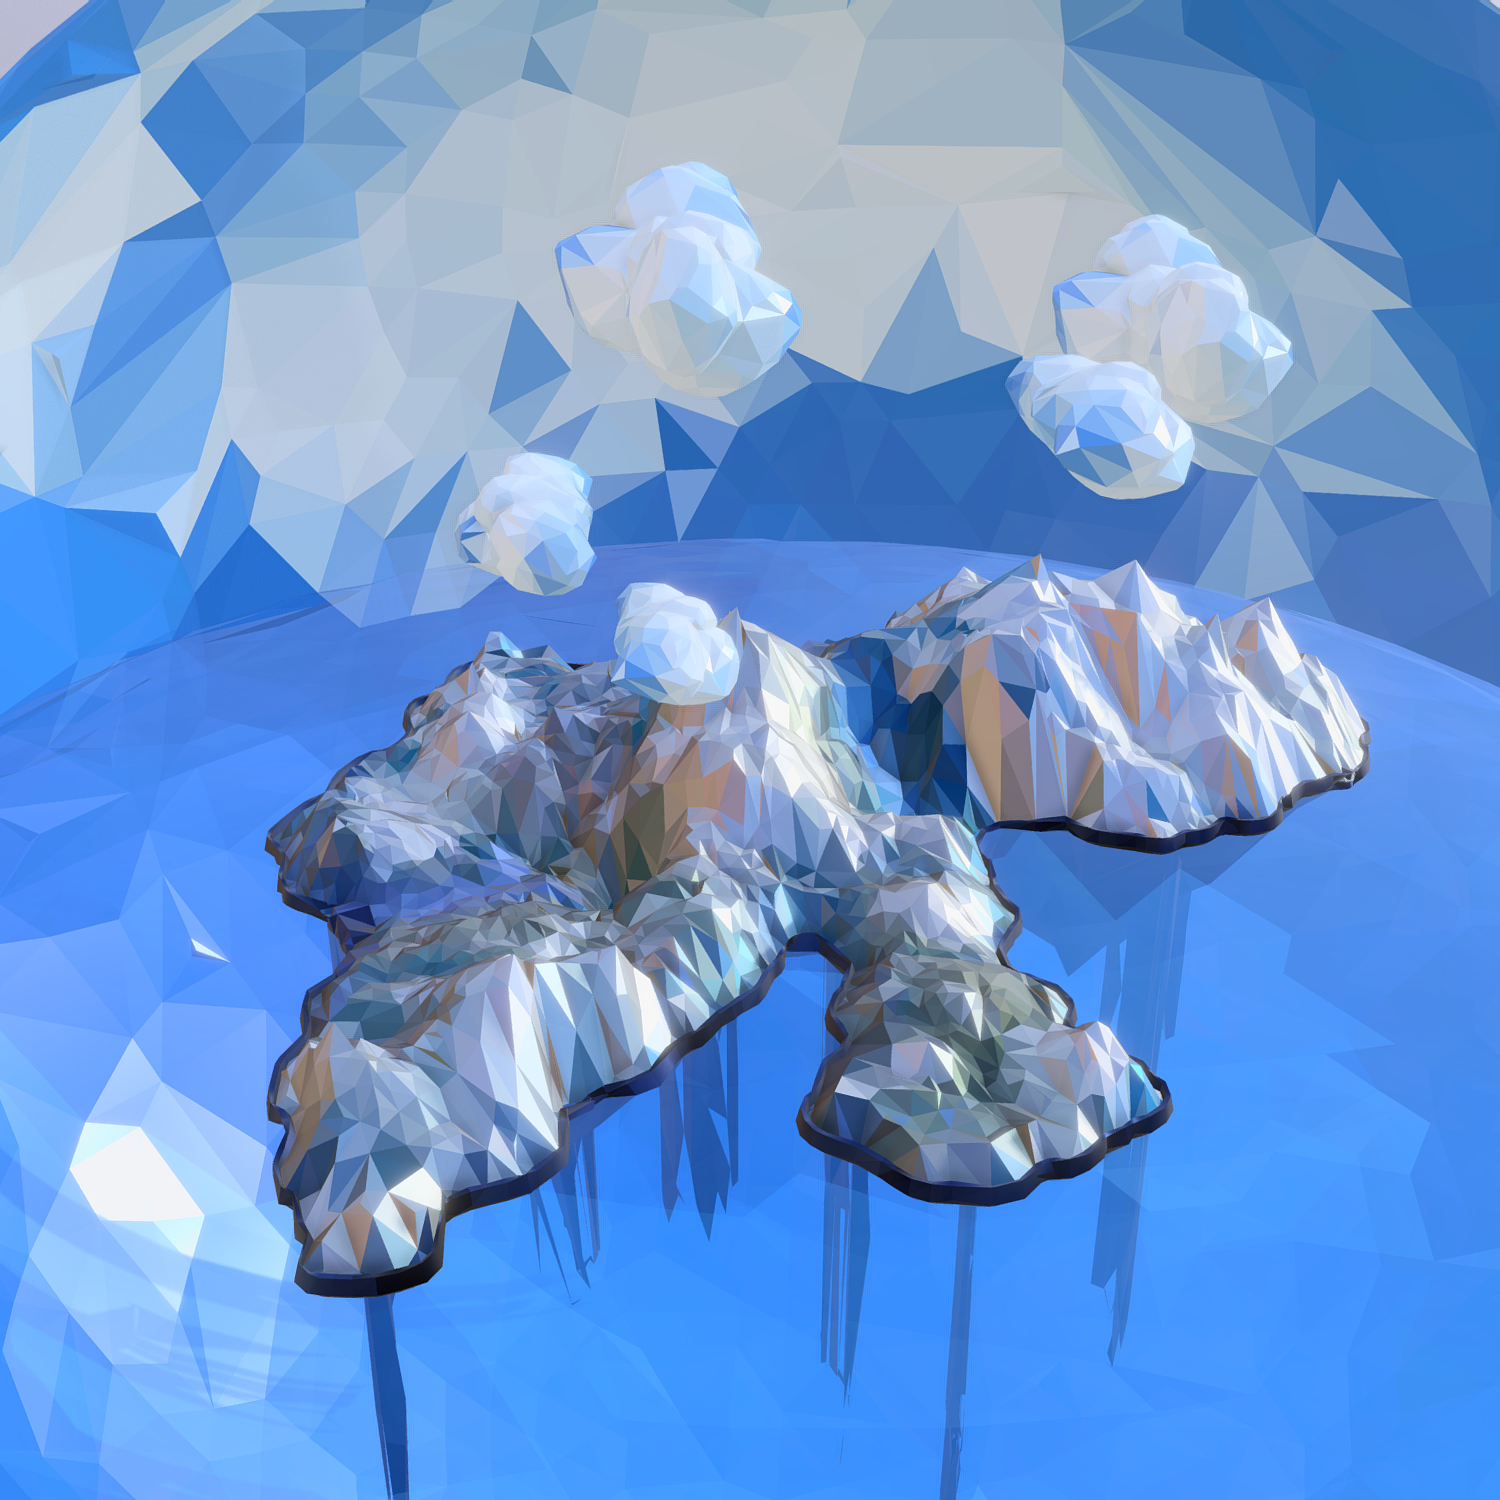 low polygon art snow island mountain waterfall 3d model 3ds max fbx ma mb obj 269726